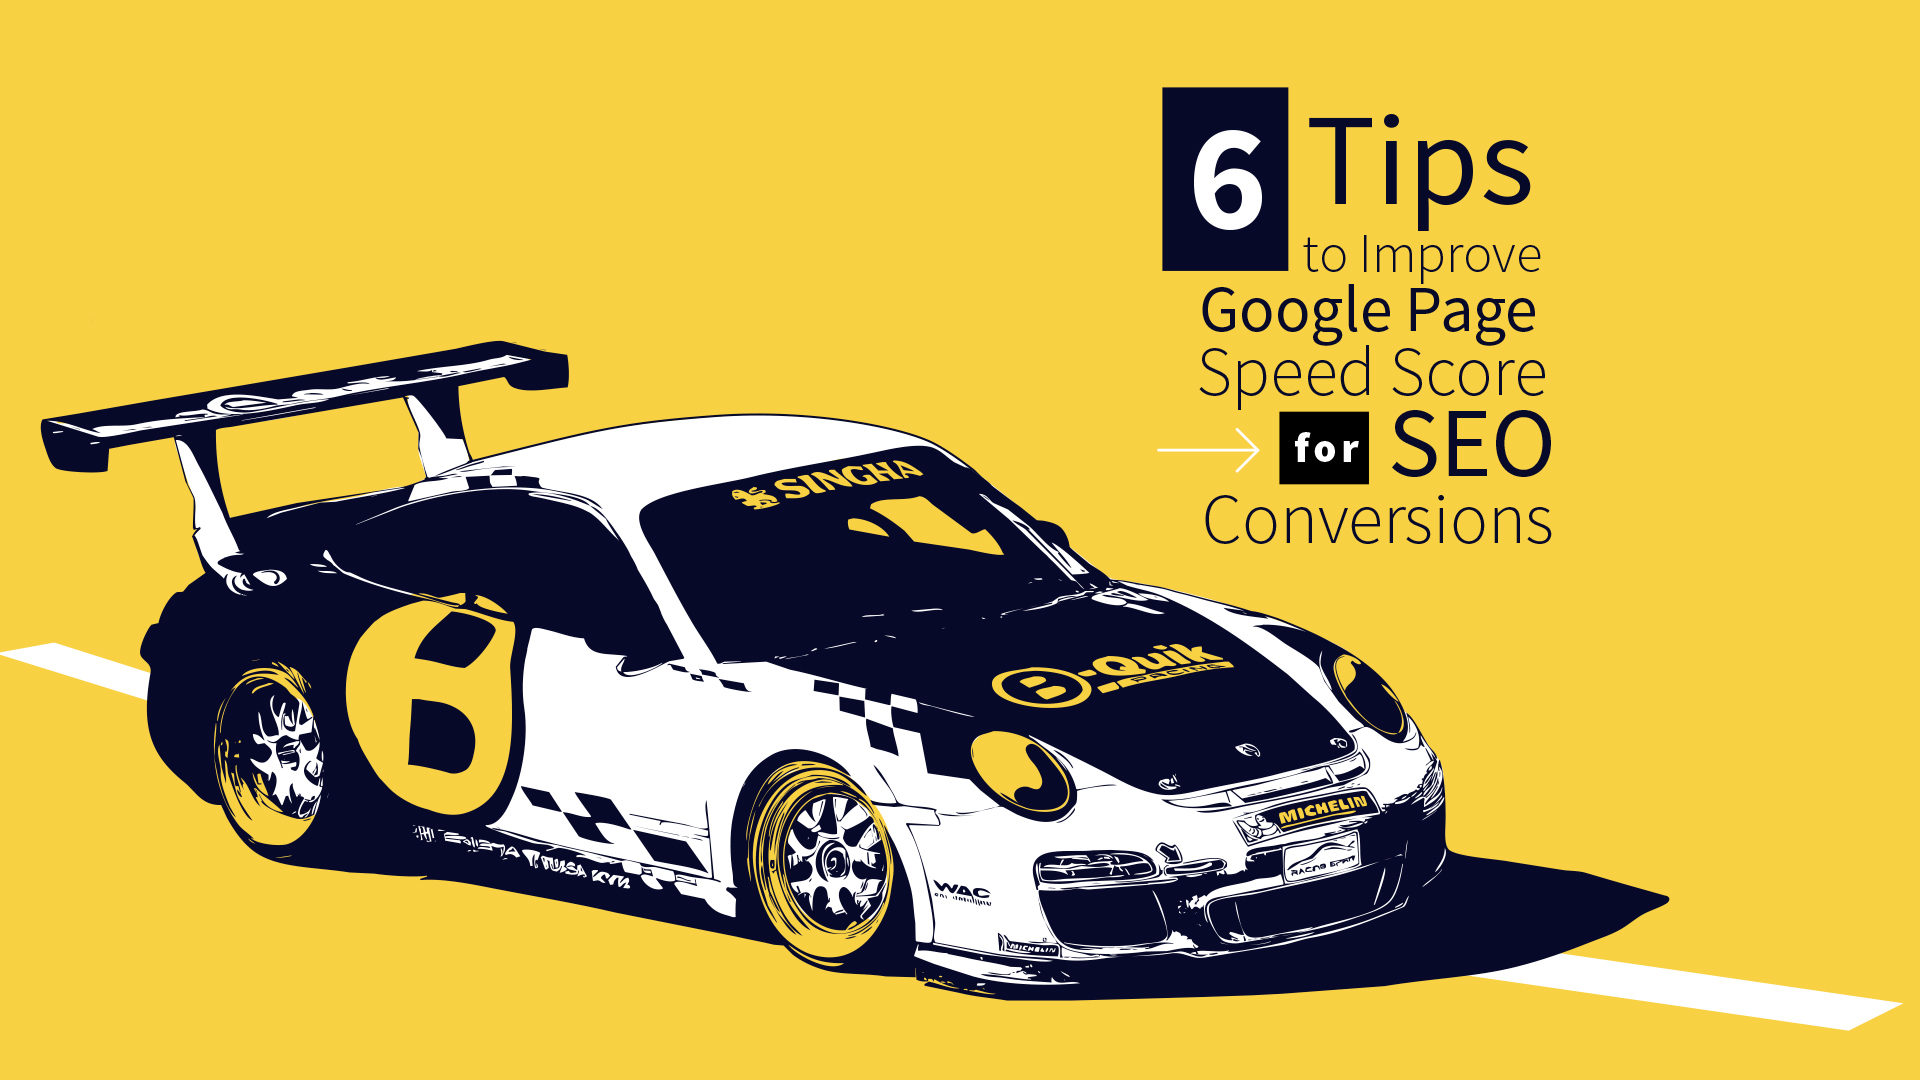 6 Tips to Improve Your Google Page Speed Score